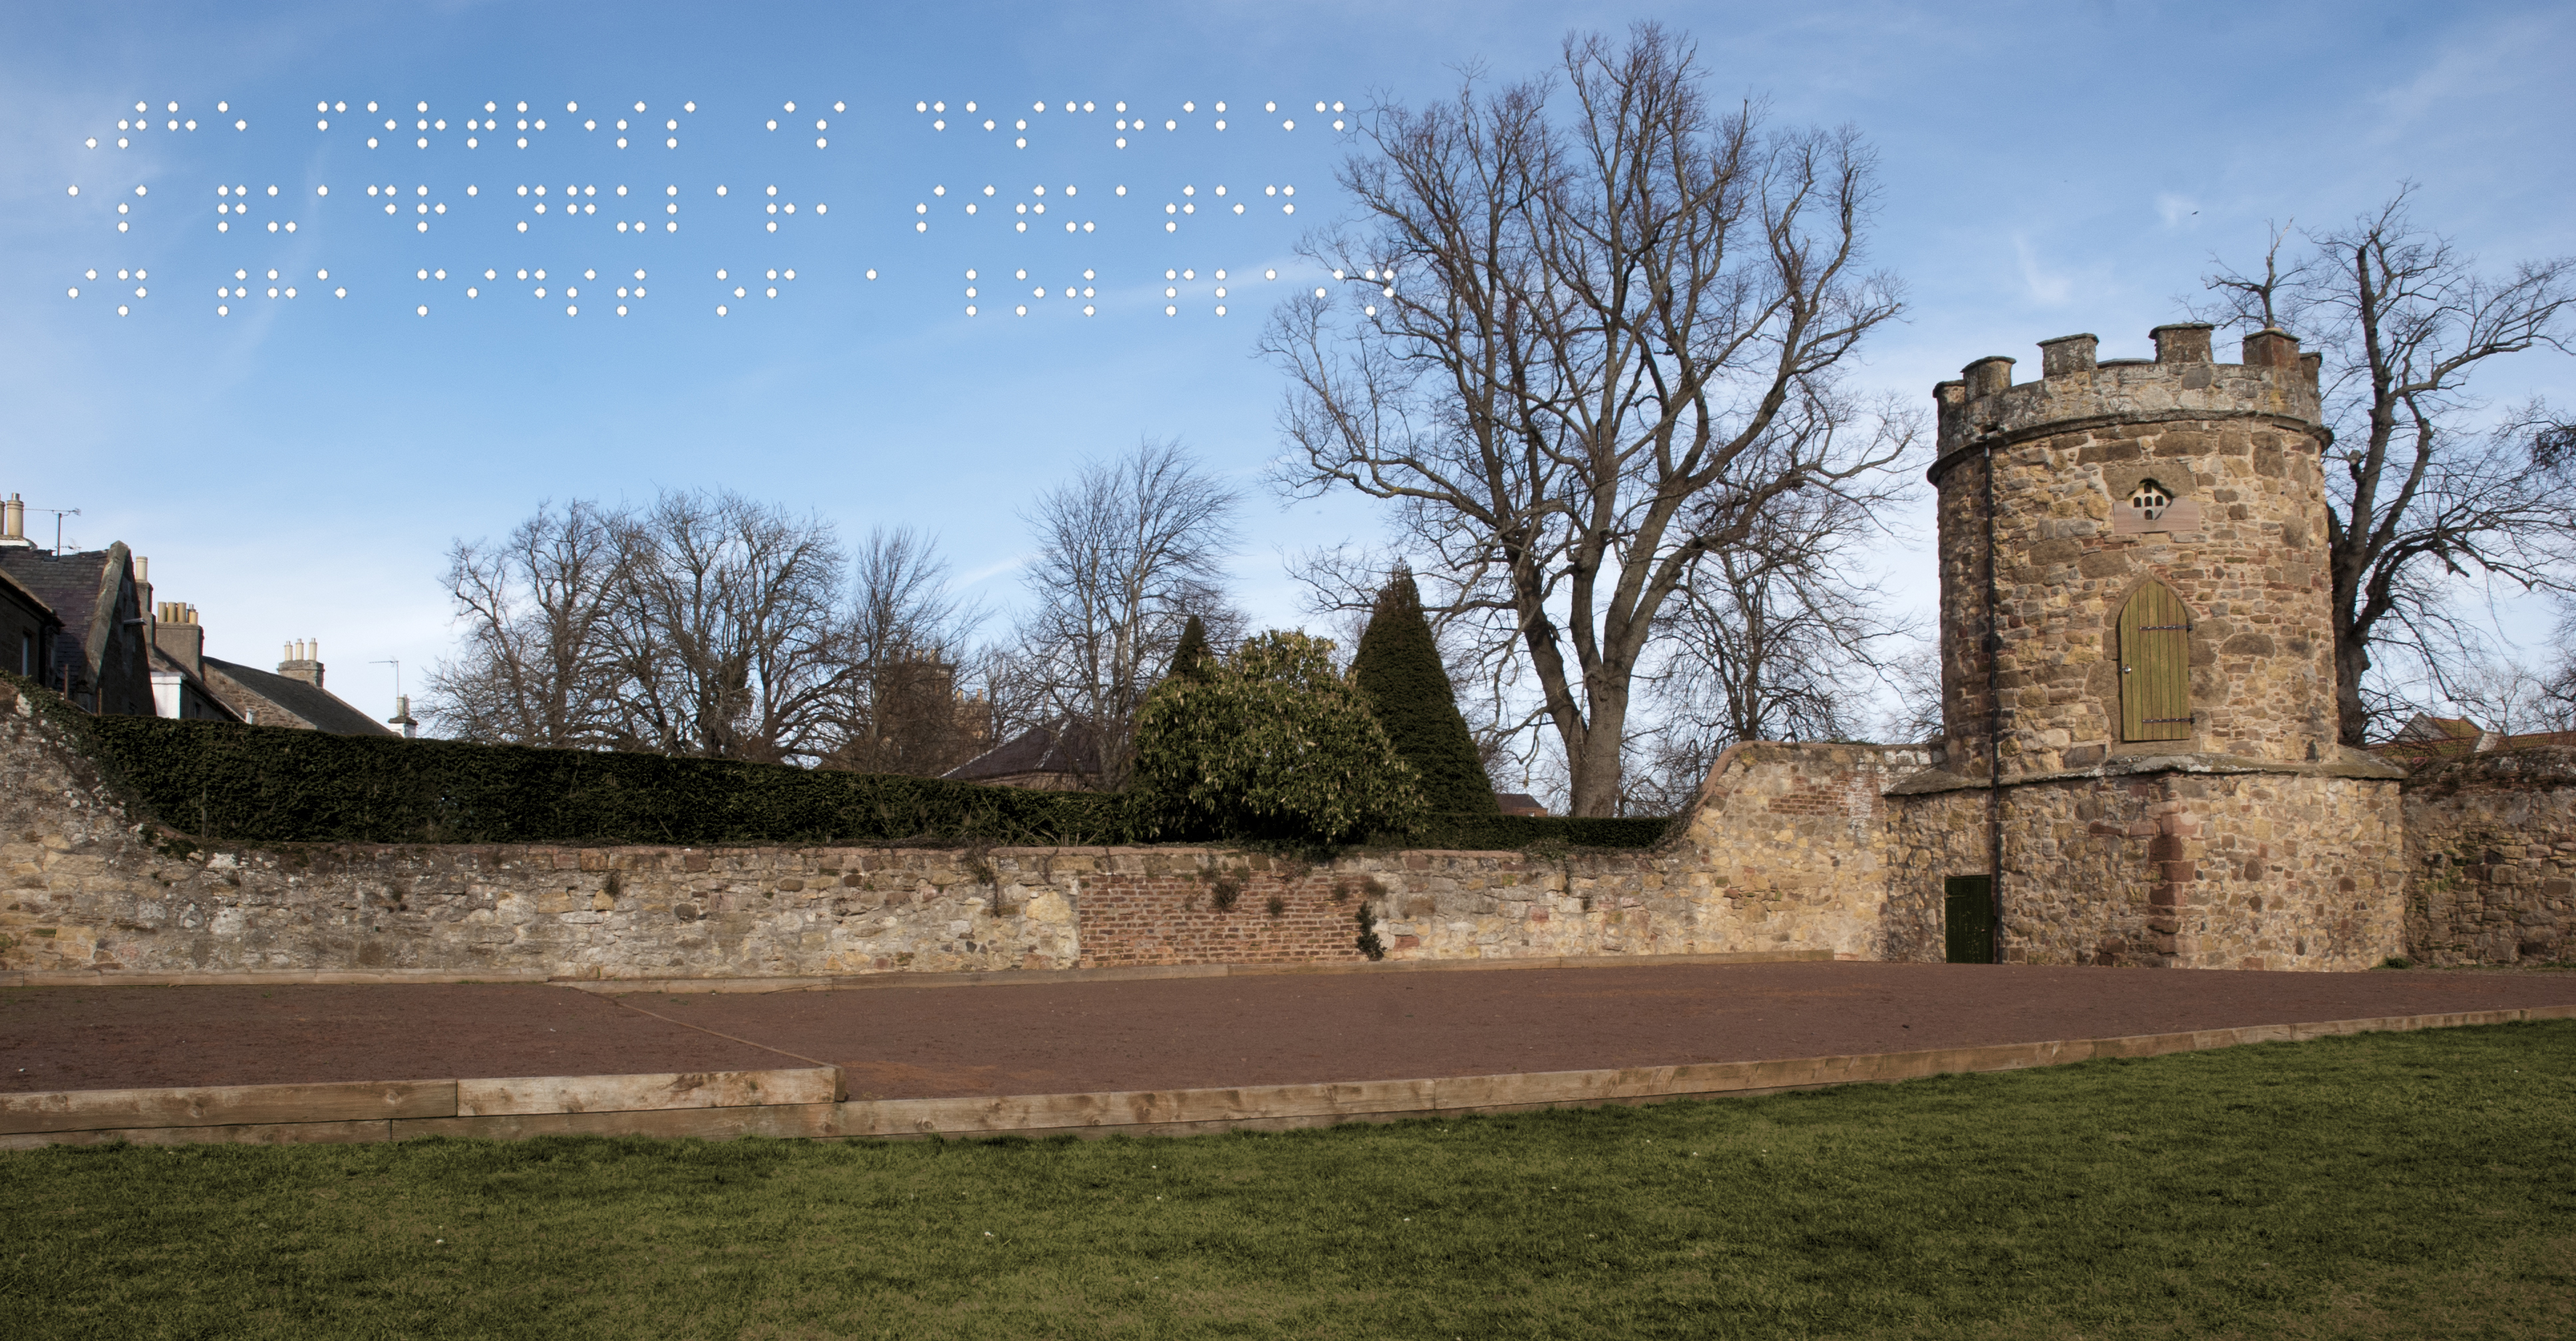 Victorian recreation of siege wall and tower. Quote taken from historical figure shown in Braille